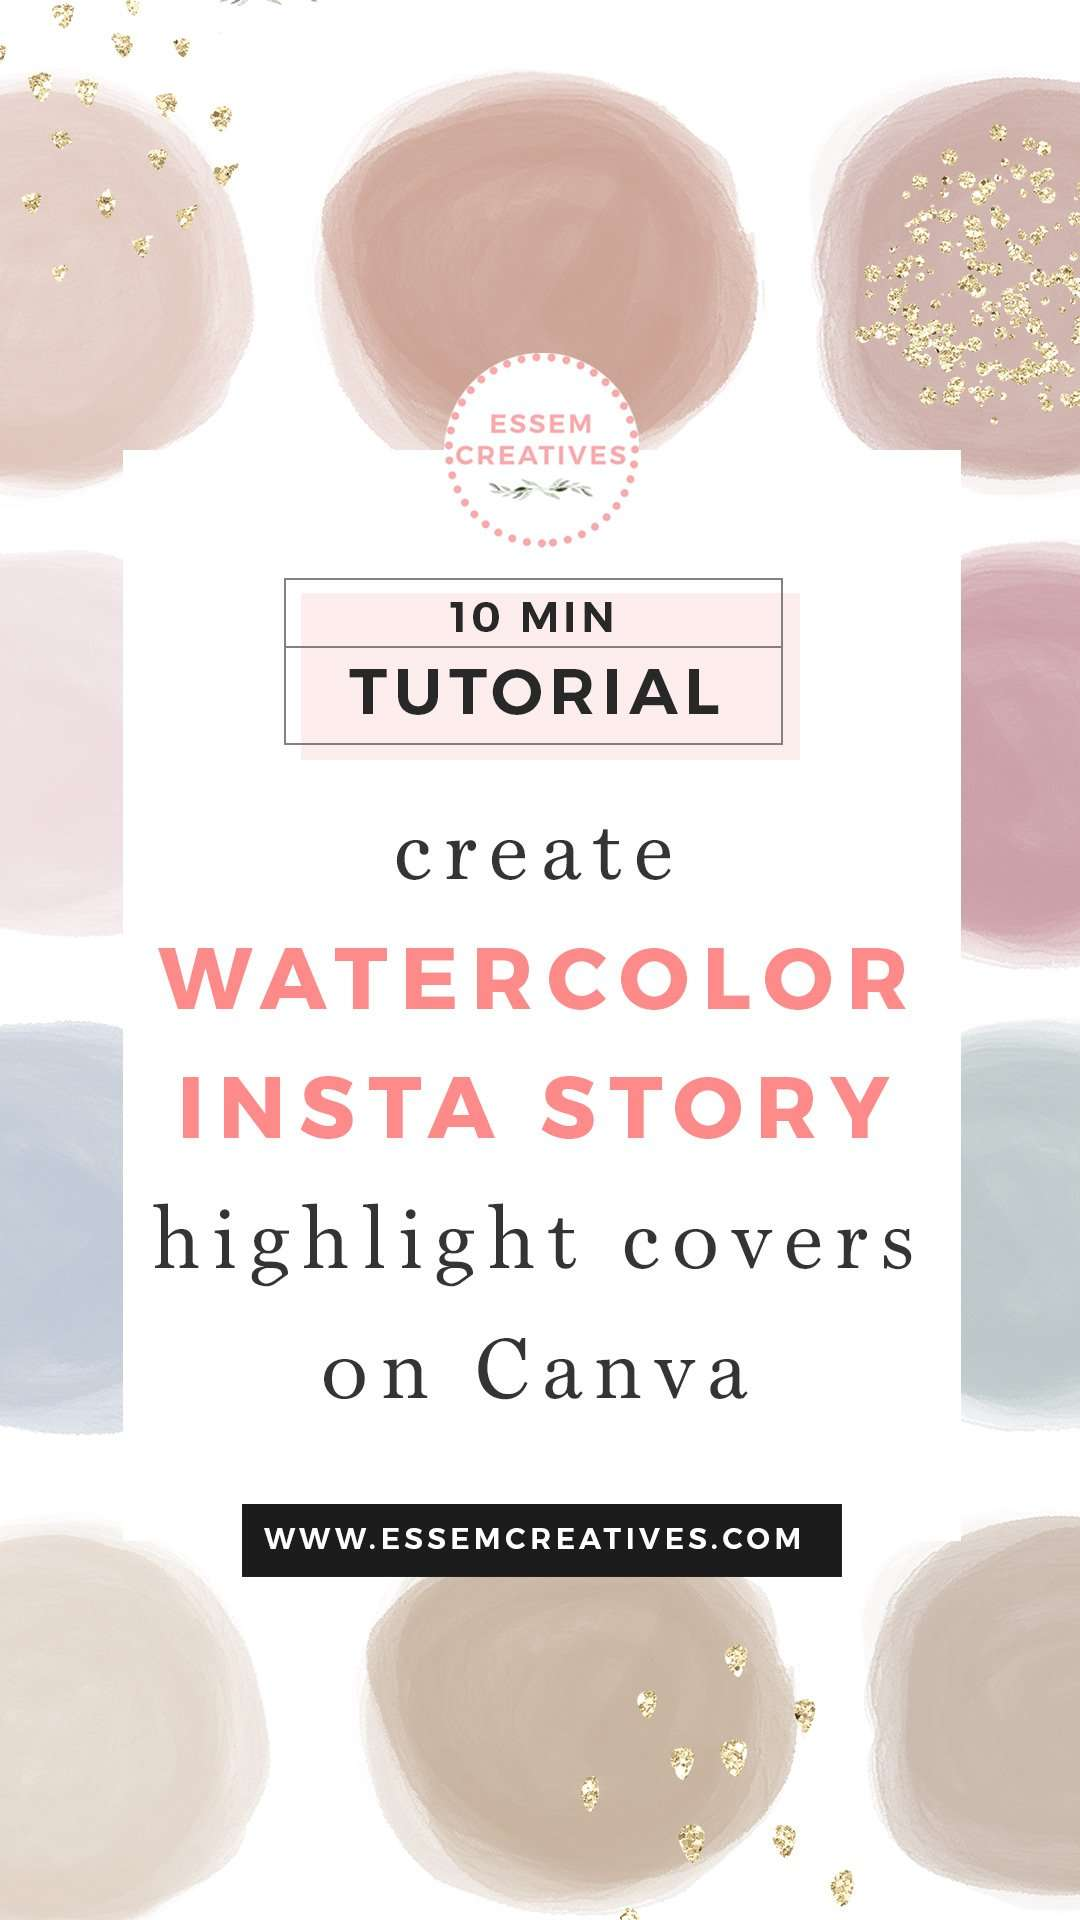 How to Make Instagram Highlight Covers Look Good with a Modern Watercolor Aesthetic - Learn how to make instagram story highlight cover icons in Pink & Neutral shades on Canva Mobile. #tutorial #instagram #instastory #highlightcovers #canvatutorial